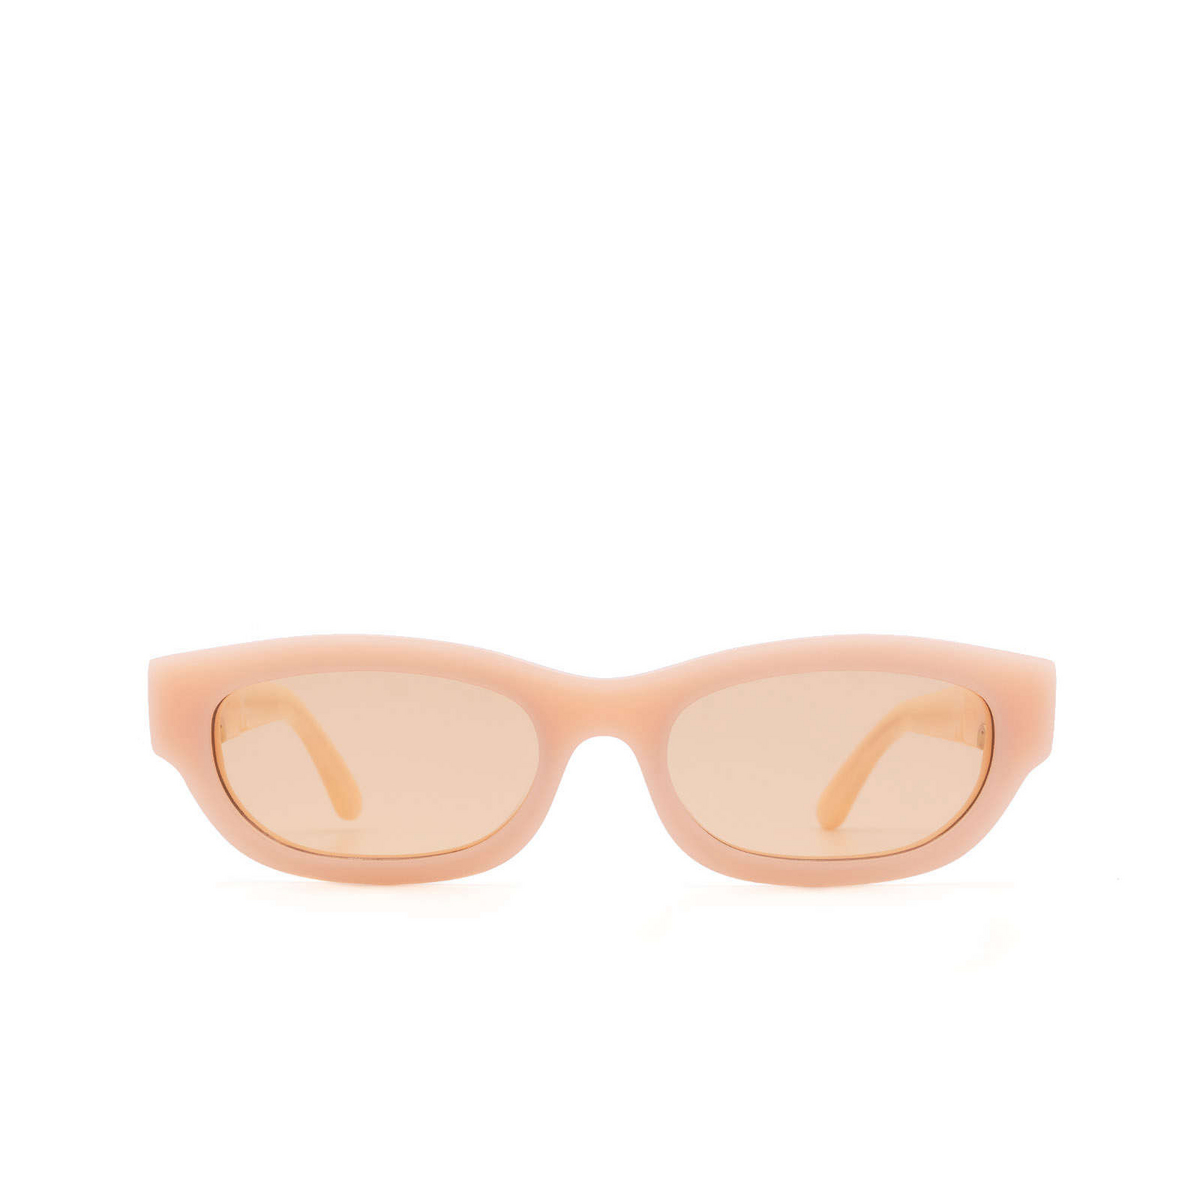 Huma® Rectangle Sunglasses: Tojo color Pink 11 - front view.